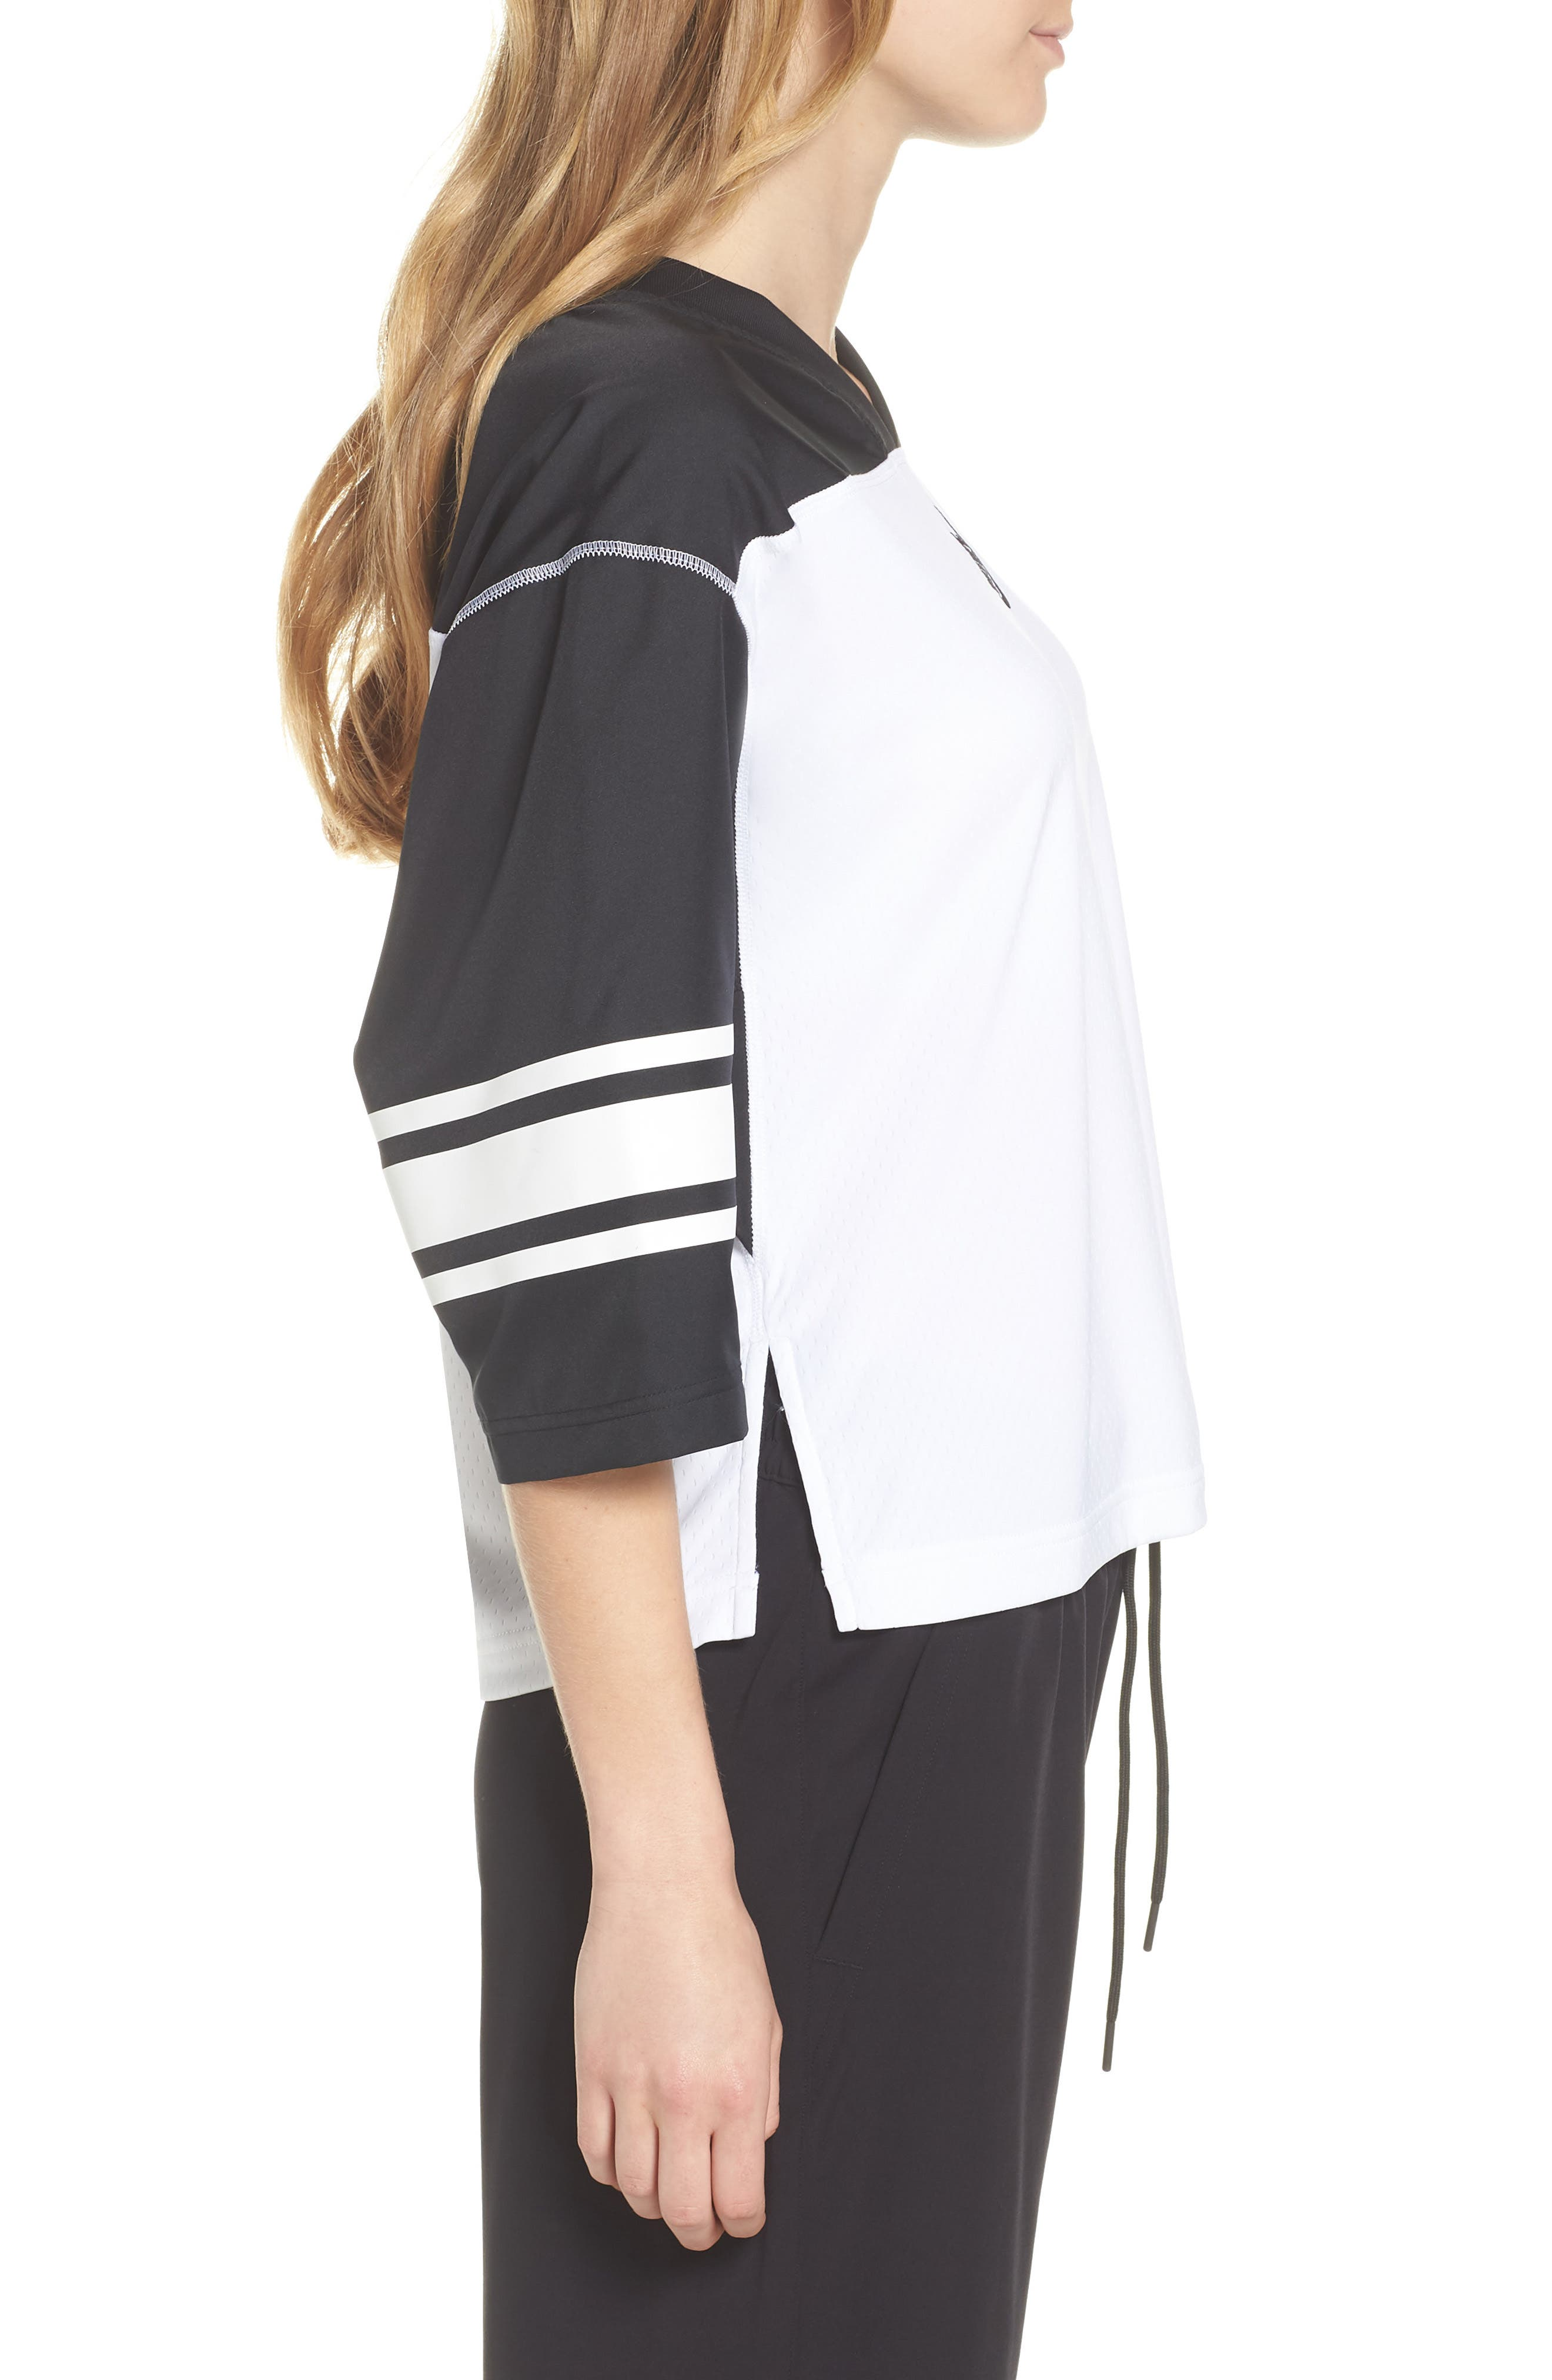 NikeLab Collection Football Top,                             Alternate thumbnail 3, color,                             BLACK/ WHITE/ BLACK